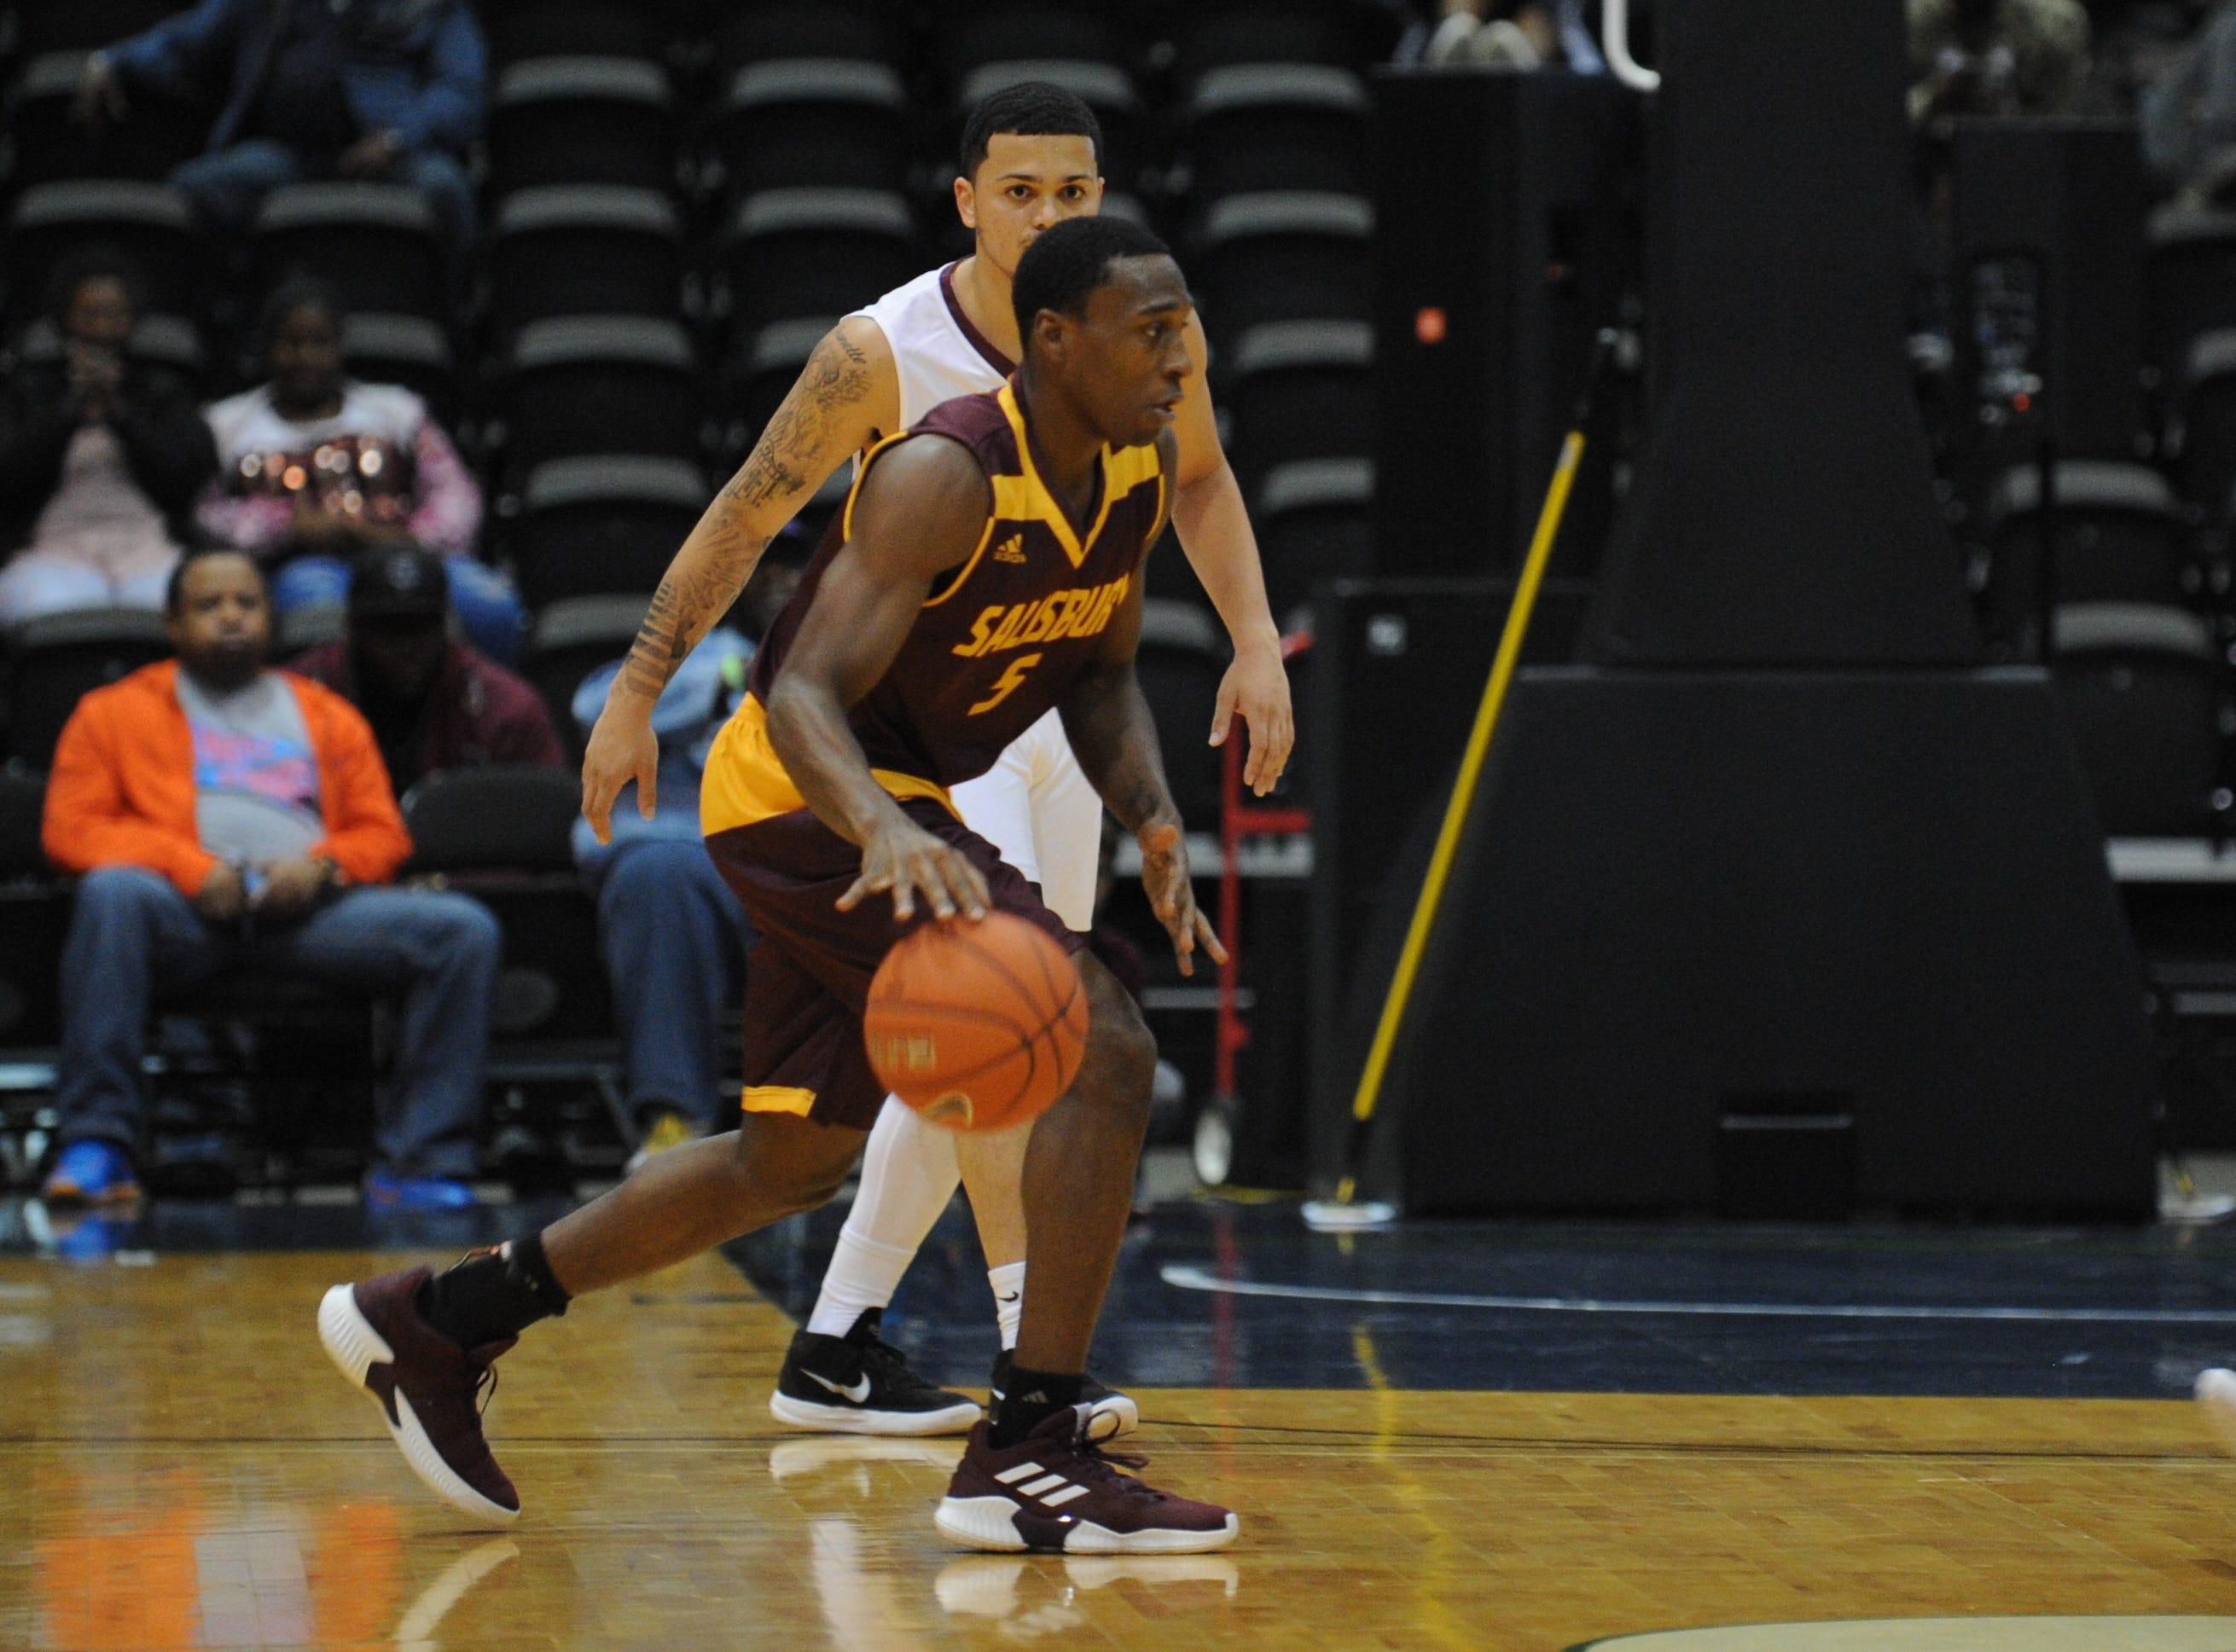 Salisbury University guard Gary Briddell takes the ball down court against the University of Maryland Eastern Shore during the 10-Mile Tipoff on Thursday, Nov. 1, 2018. The Sea Gulls won, 67-60.